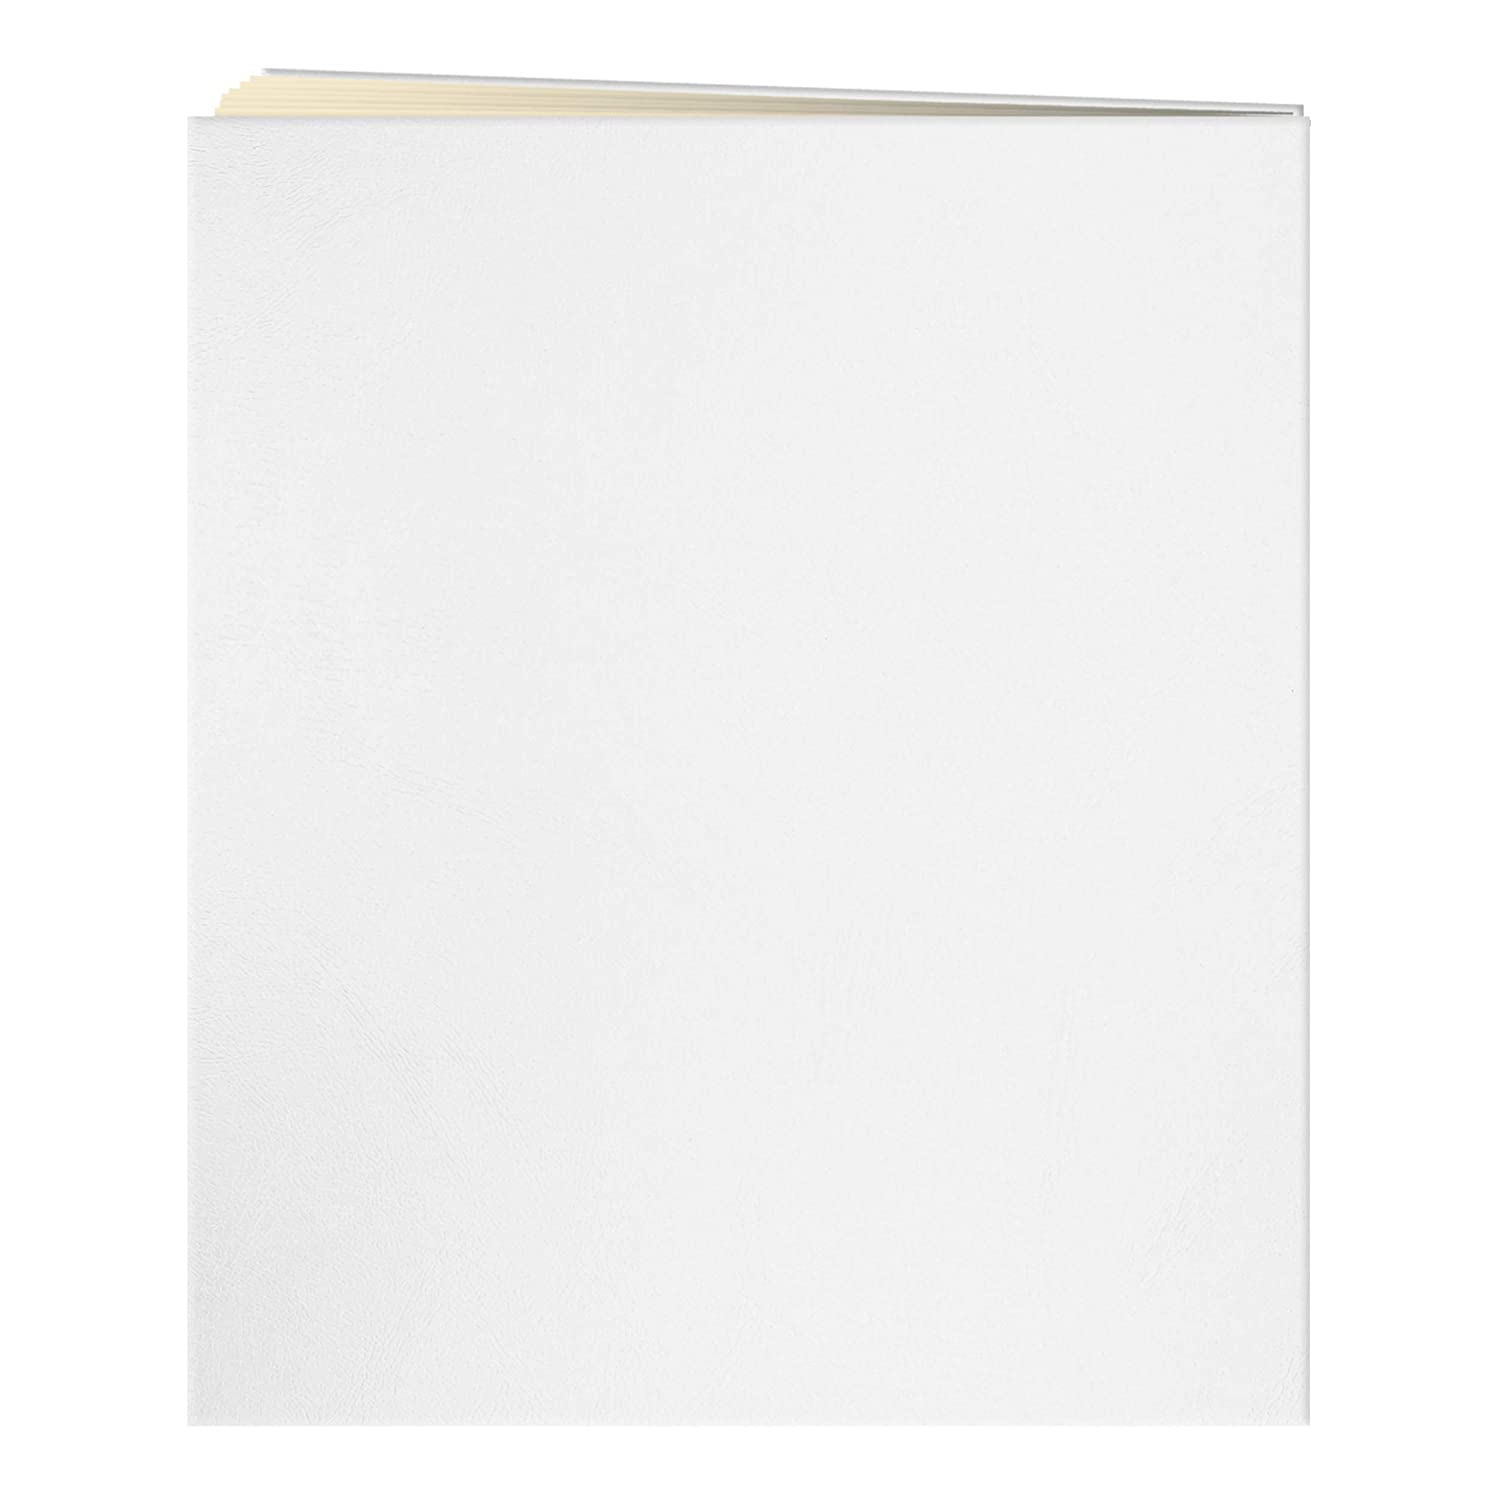 50 Sheets Navy Blue Jumbo 11.75x14 Beige Page Scrapbook 100 Pages